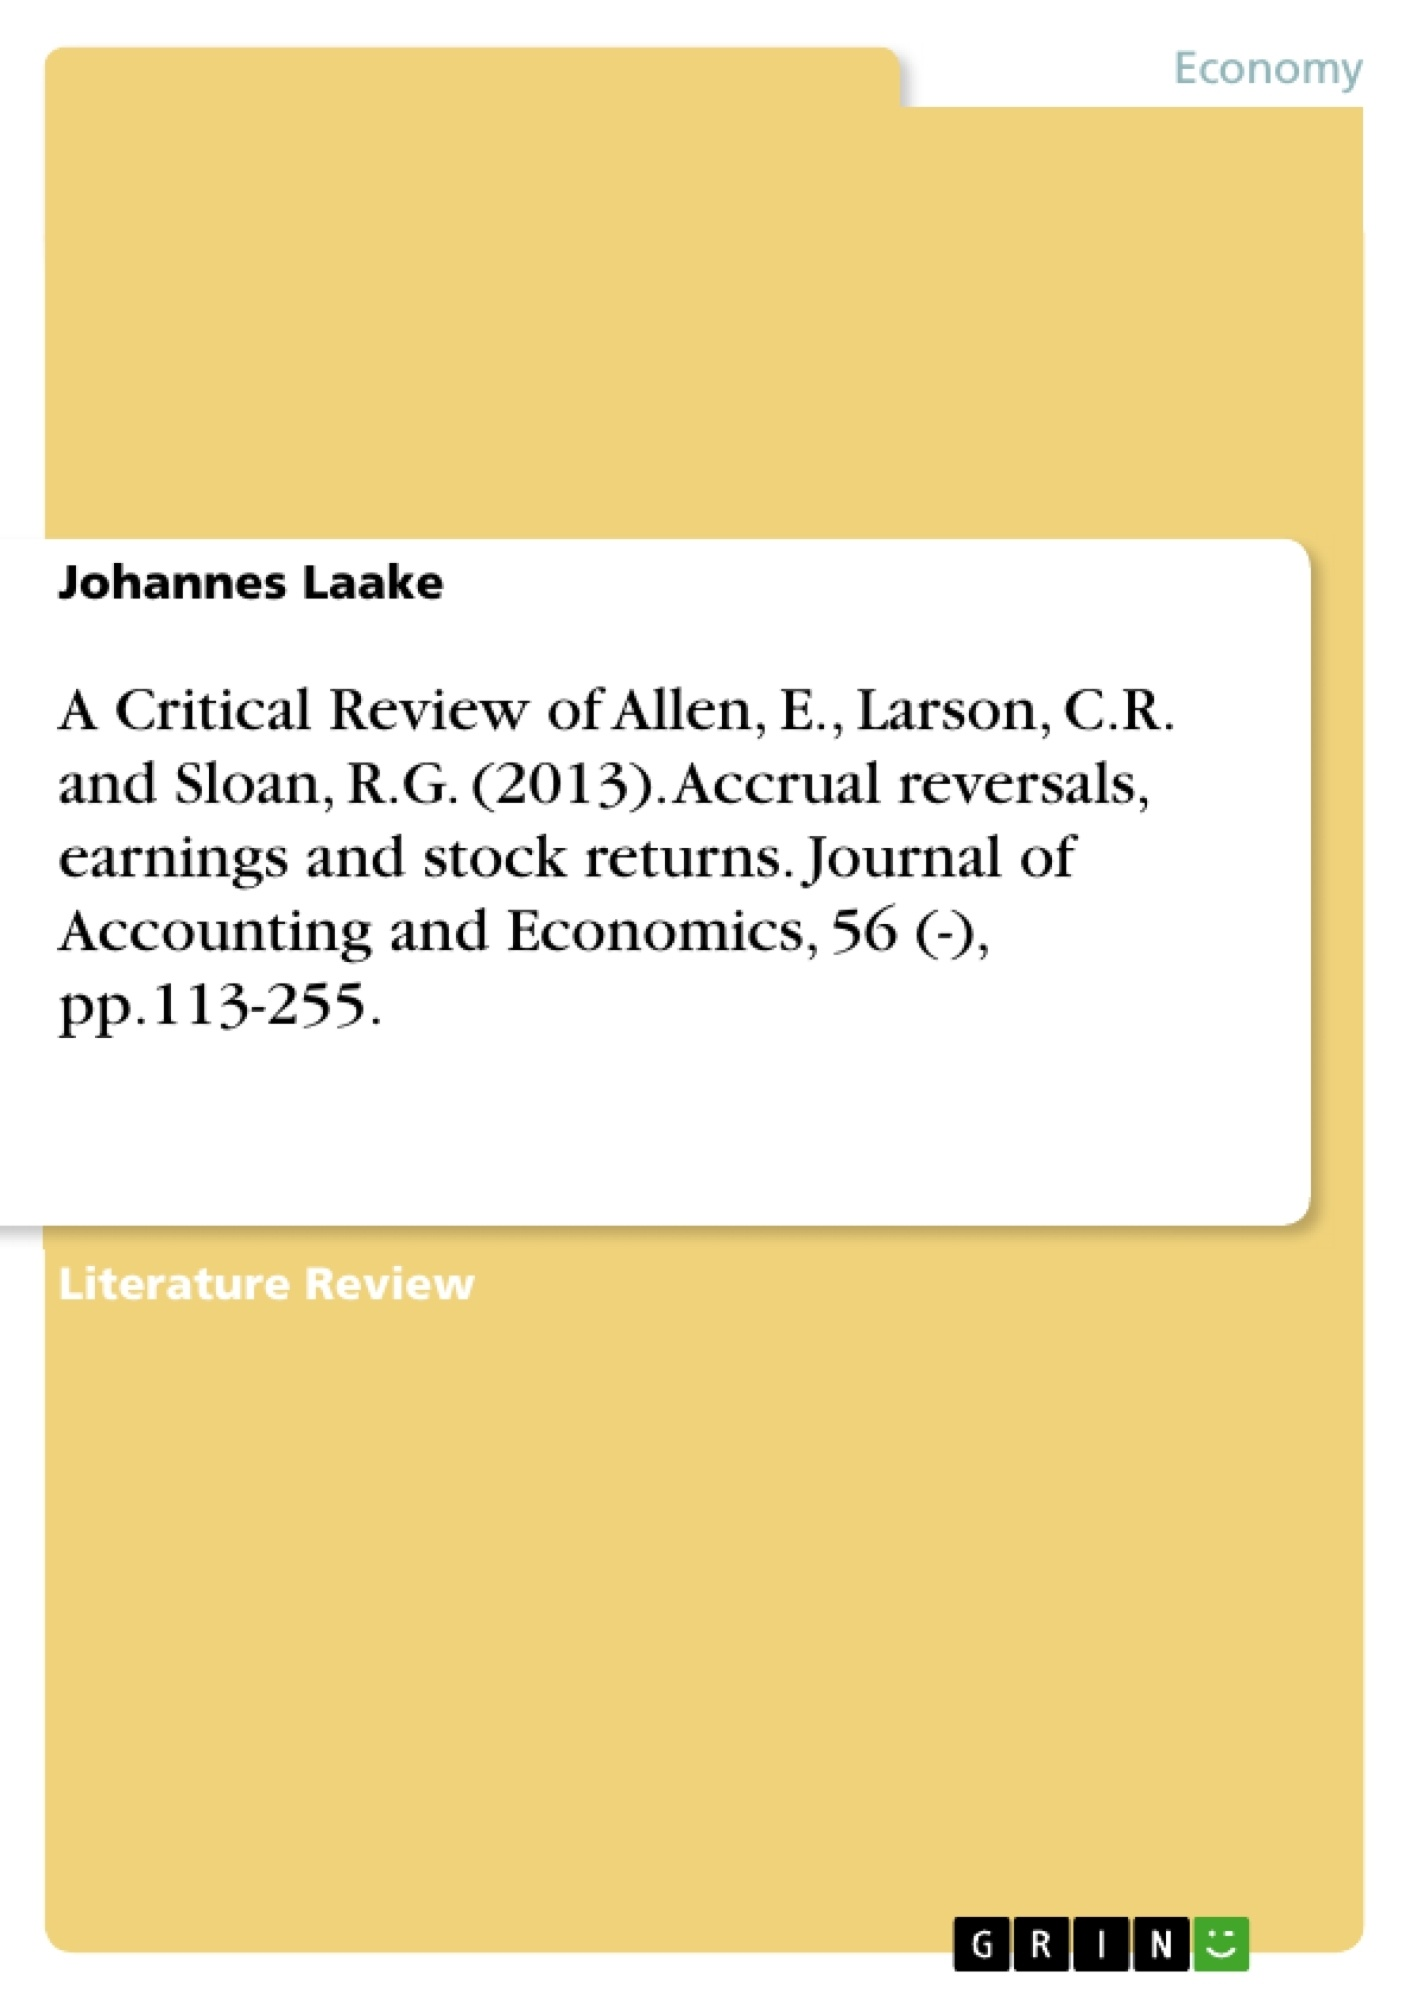 Title: A Critical Review of Allen, E., Larson, C.R. and Sloan, R.G. (2013). Accrual reversals, earnings and stock returns. Journal of Accounting and Economics, 56 (-), pp.113-255.